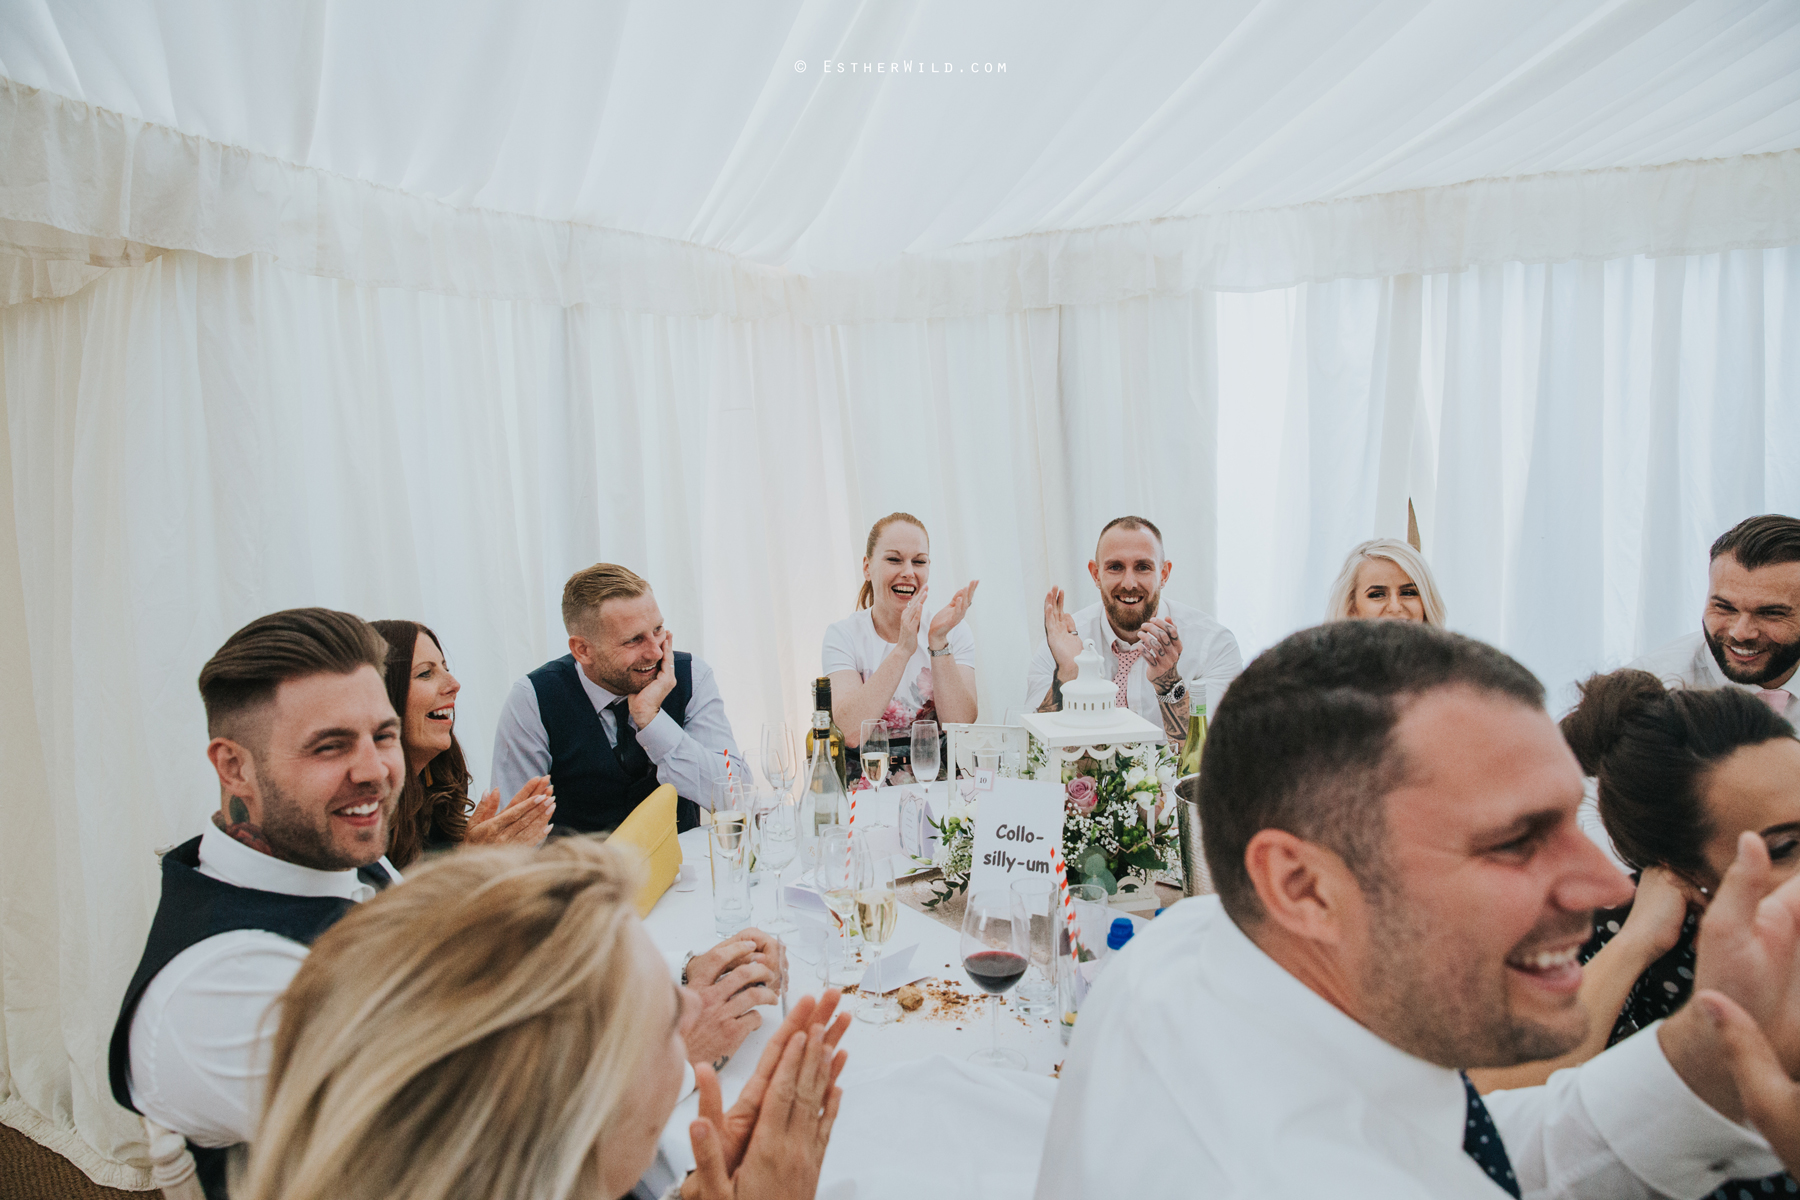 Wootton_Wedding_Copyright_Esther_Wild_Photographer_IMG_2804.jpg